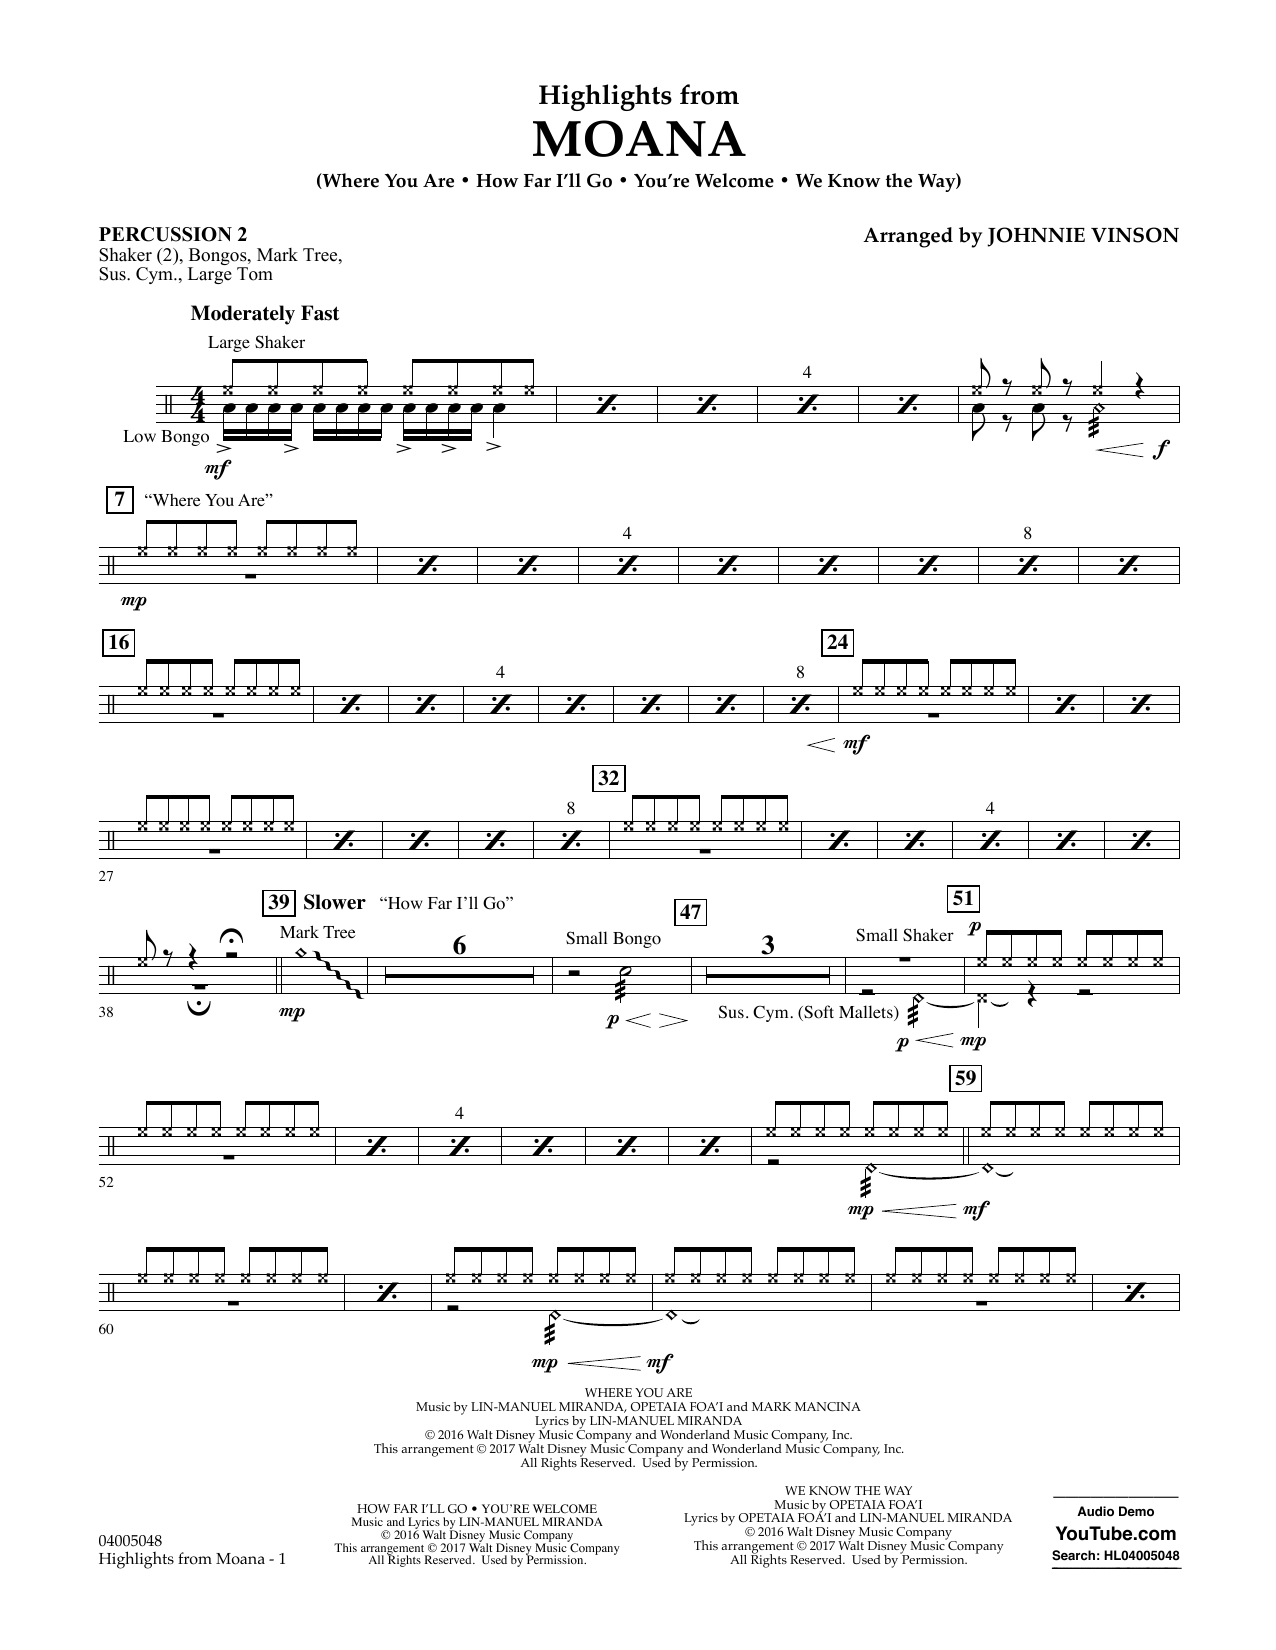 Highlights from Moana - Percussion 2 Sheet Music